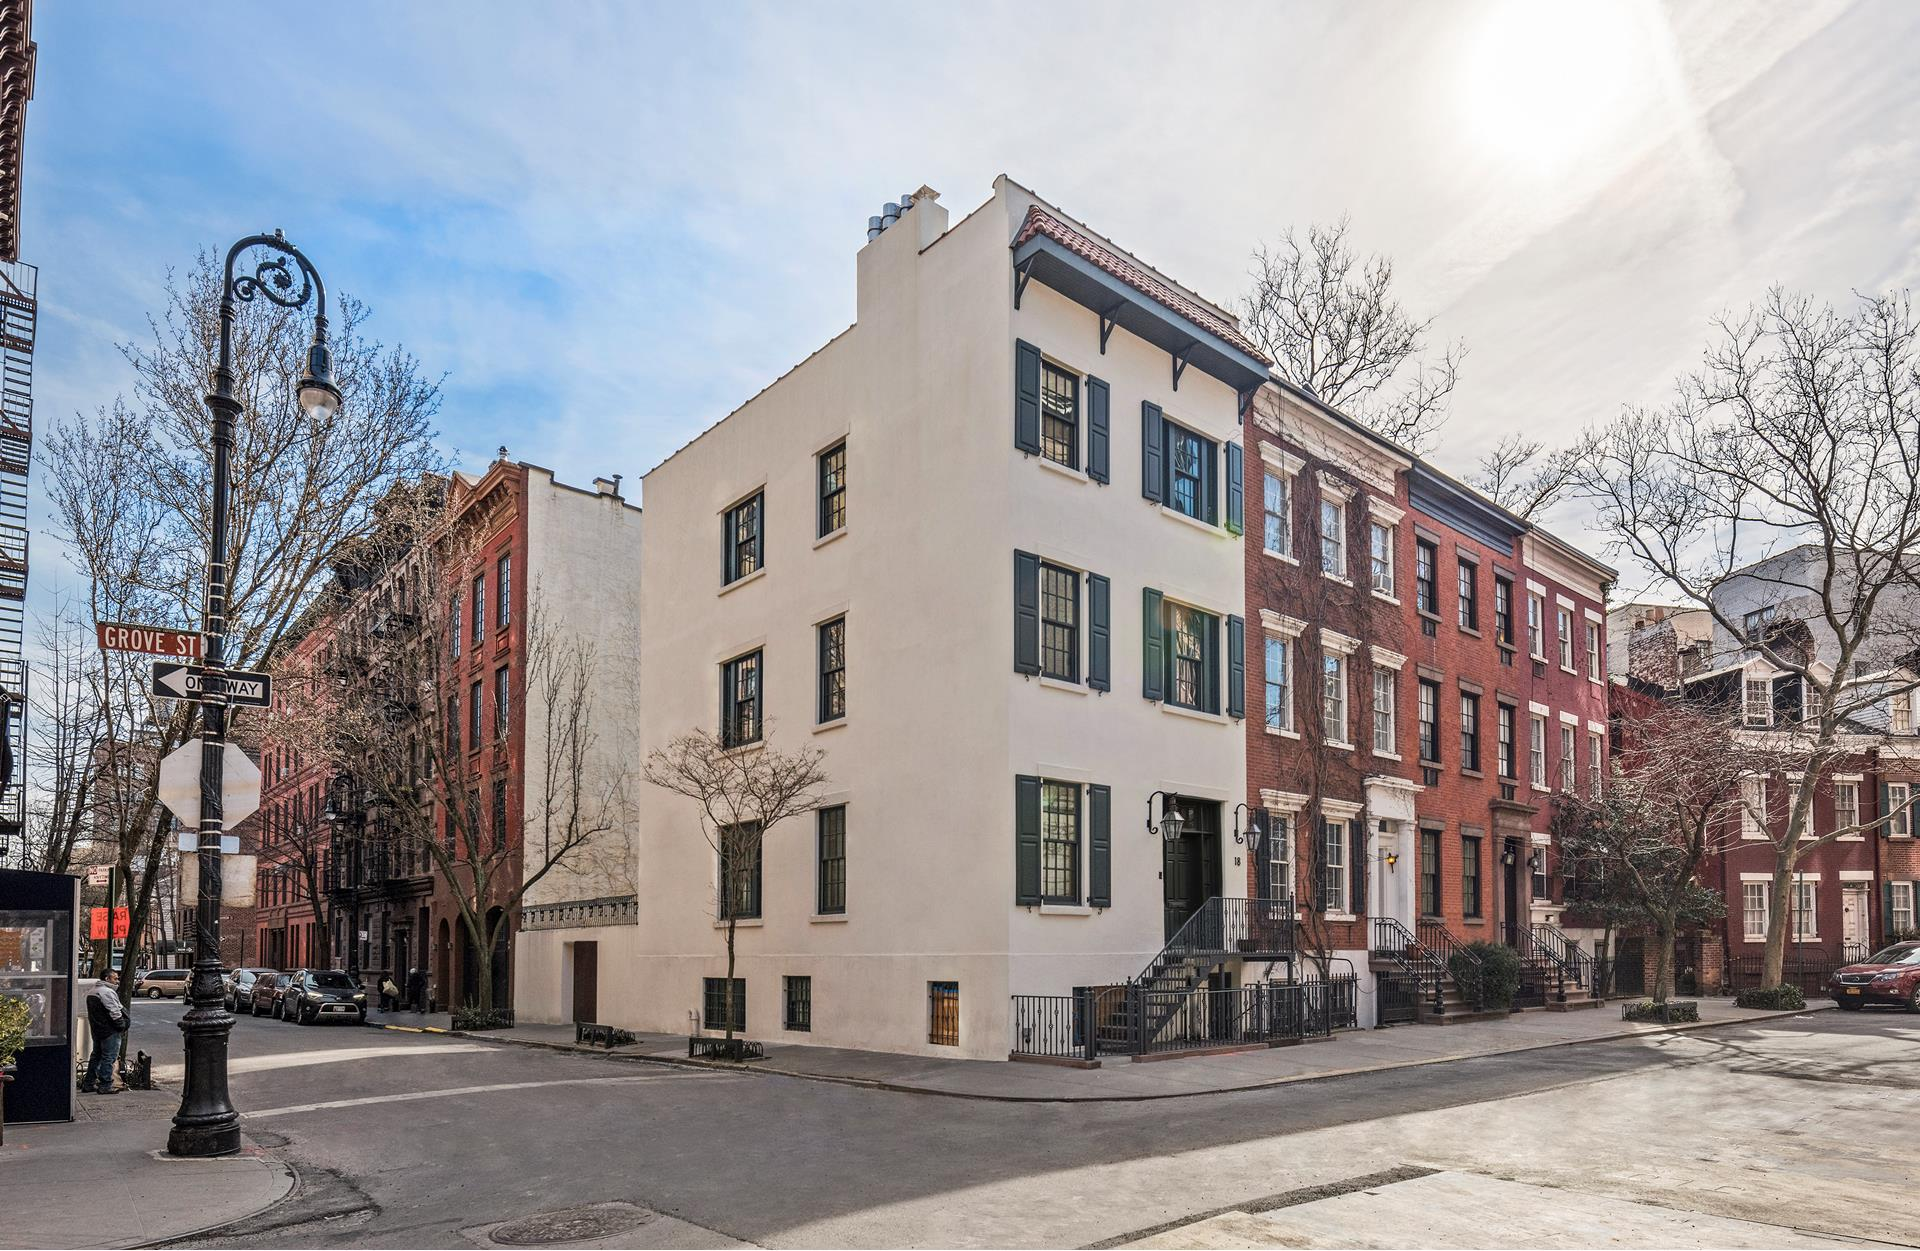 18 Grove St - West Village - Meatpacking District, New York